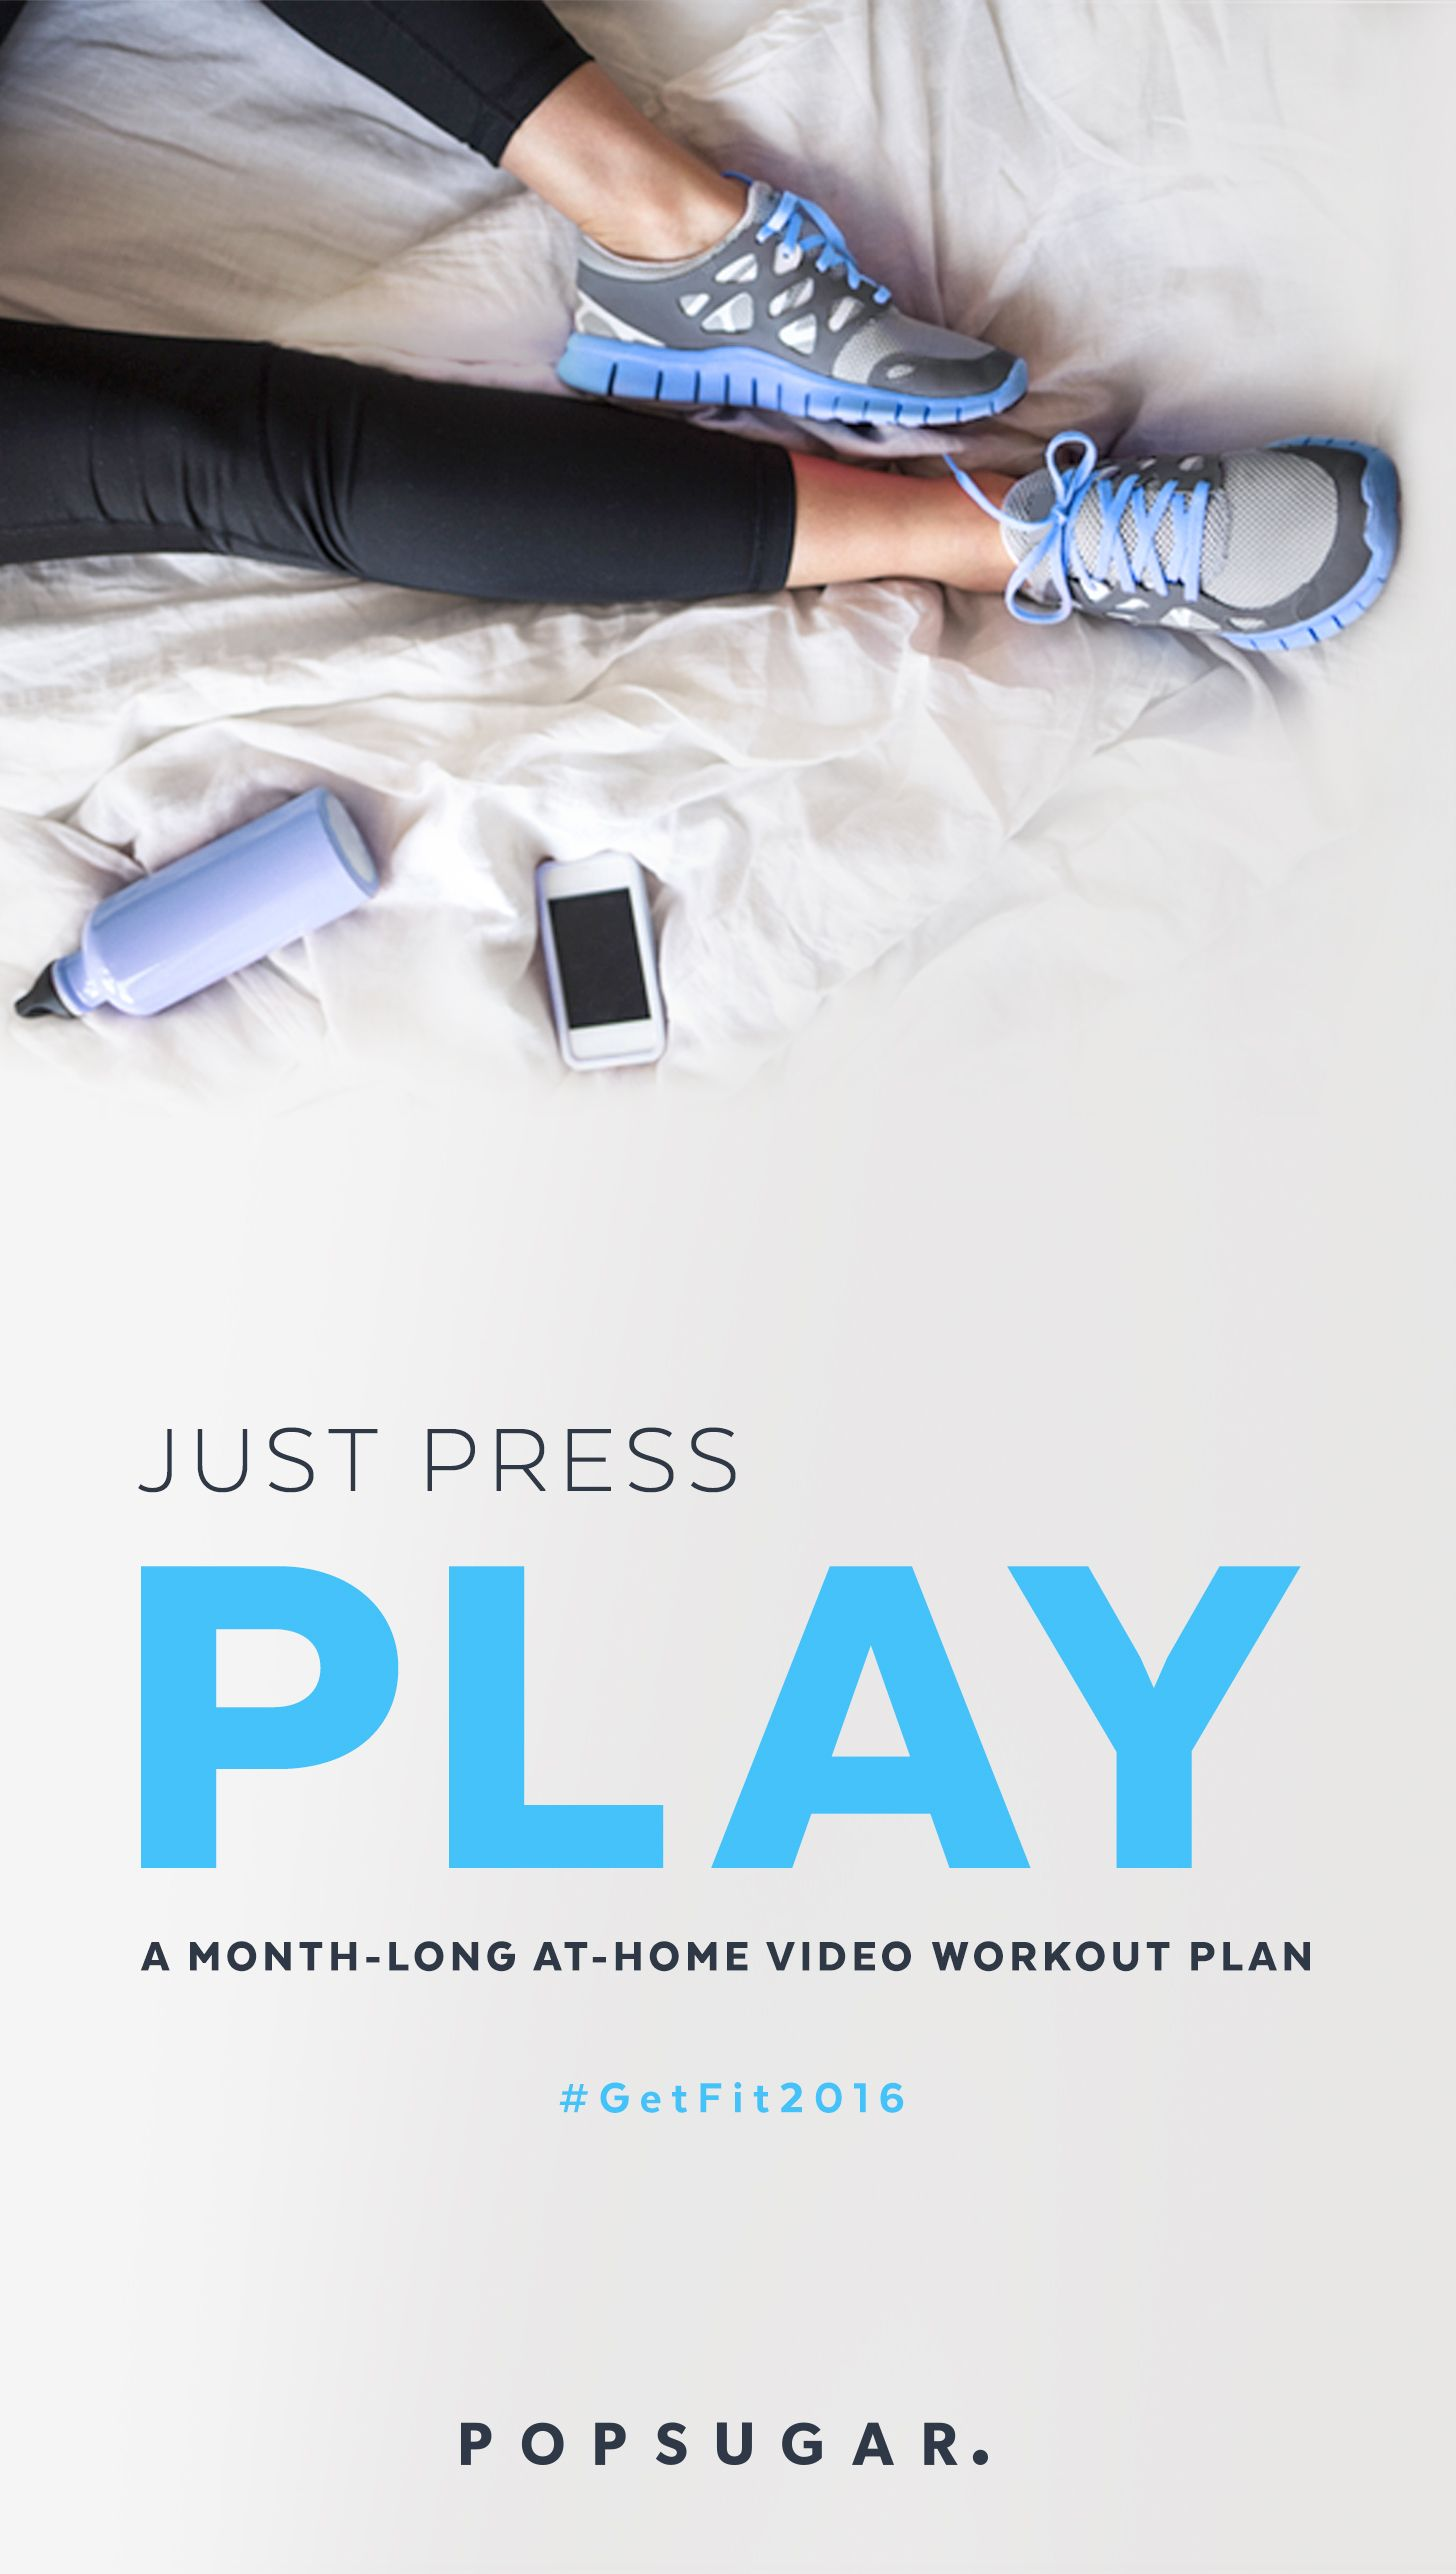 Just Press Play: A Month-Long At-Home Video Workout Plan